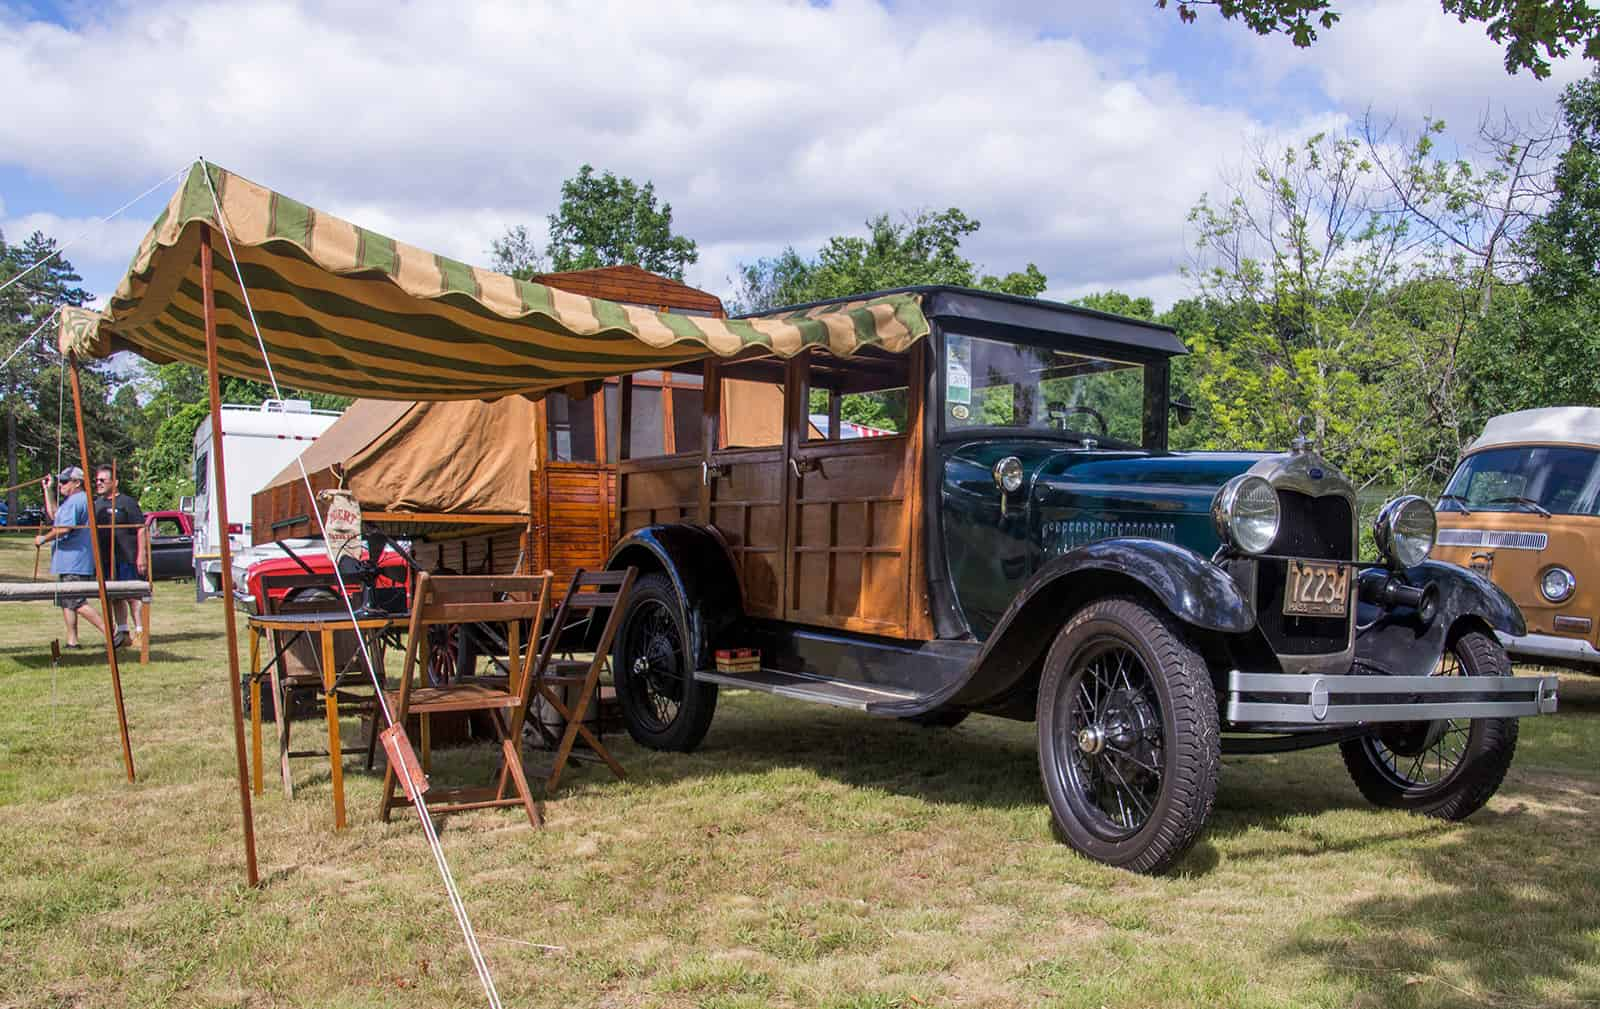 2016 Cars of Summer 1929 Ford Model A Station Wagon - Woody Camping Rig